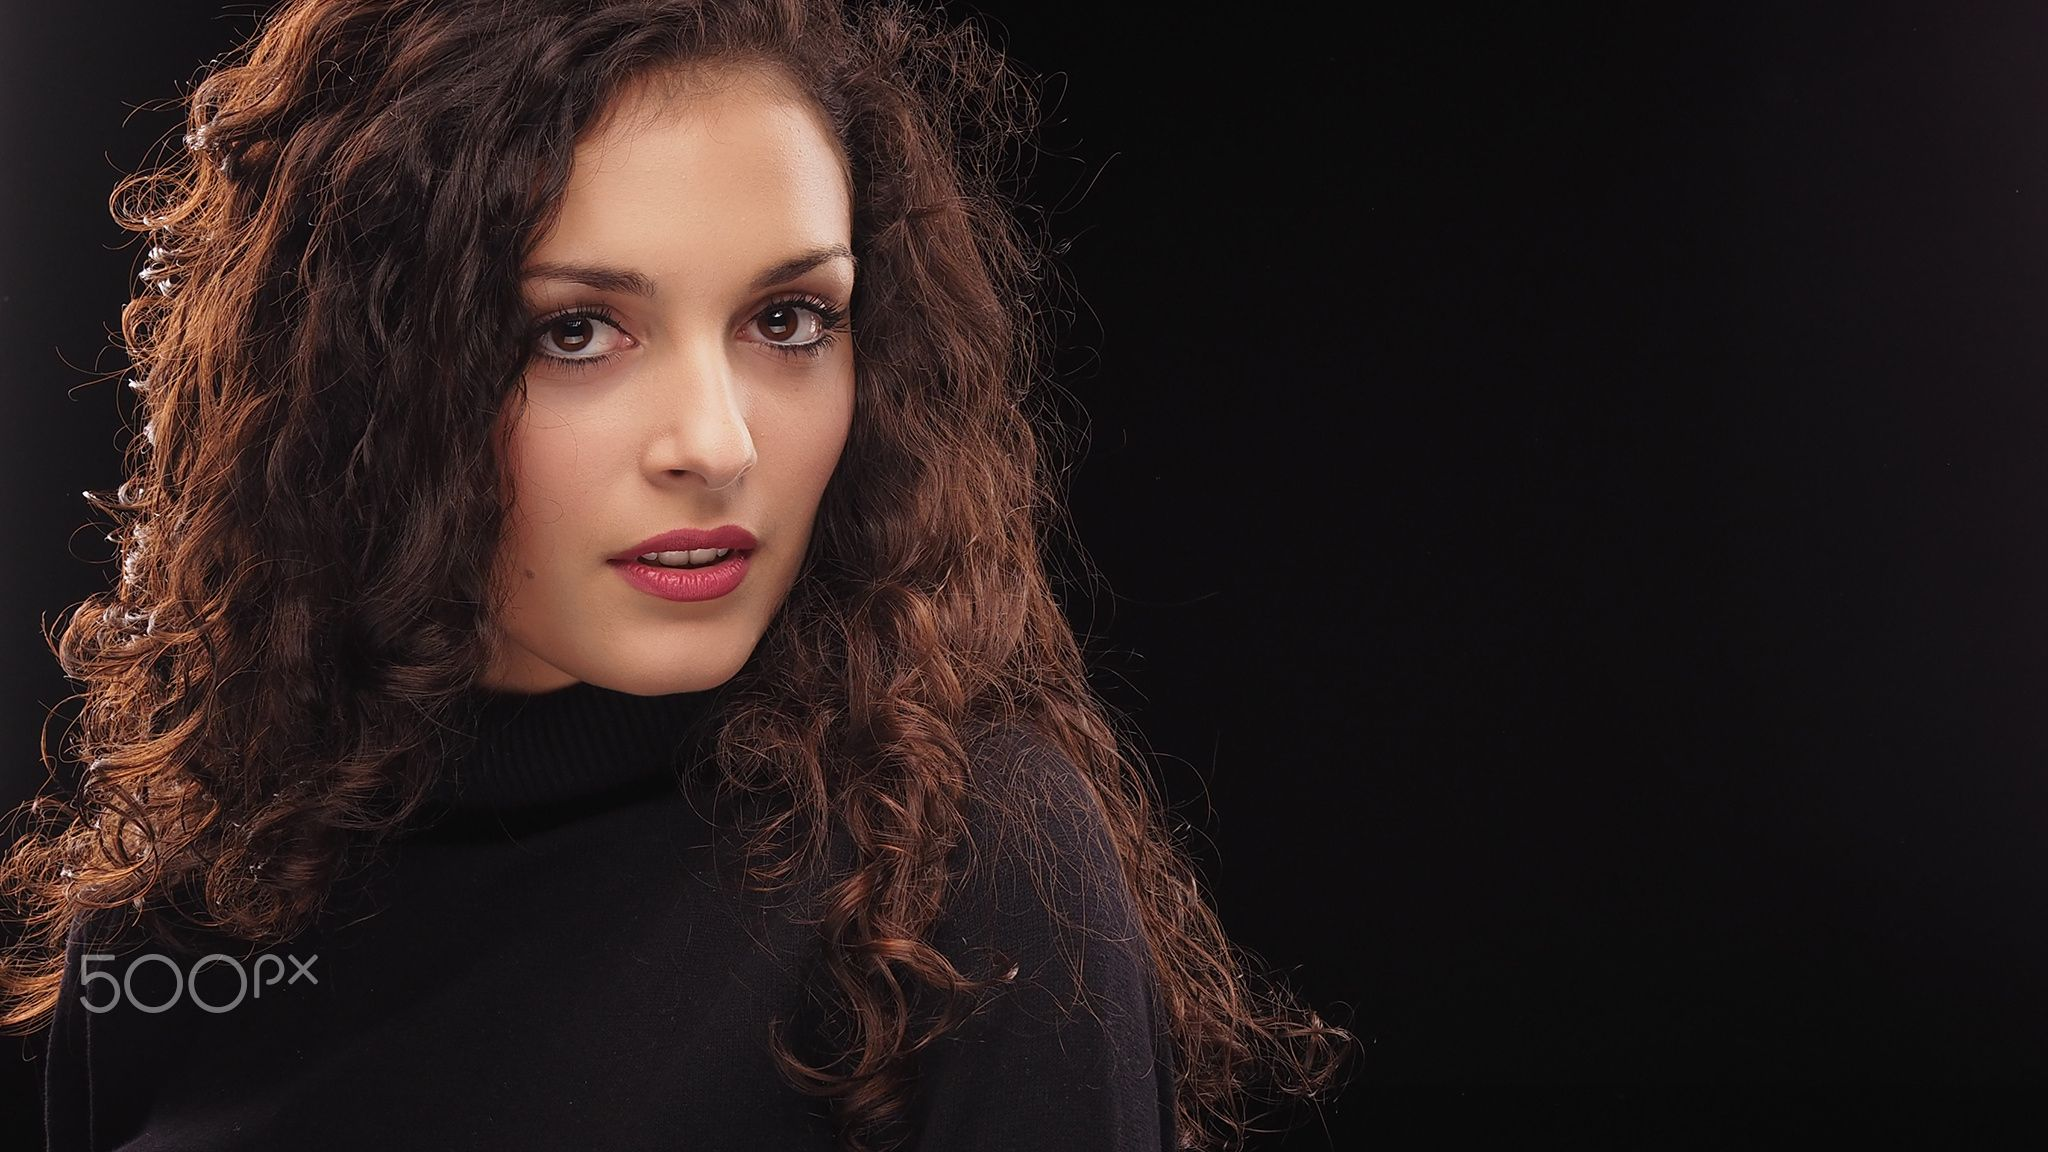 Ema - PROFOTO test lights in the studio with Olympus